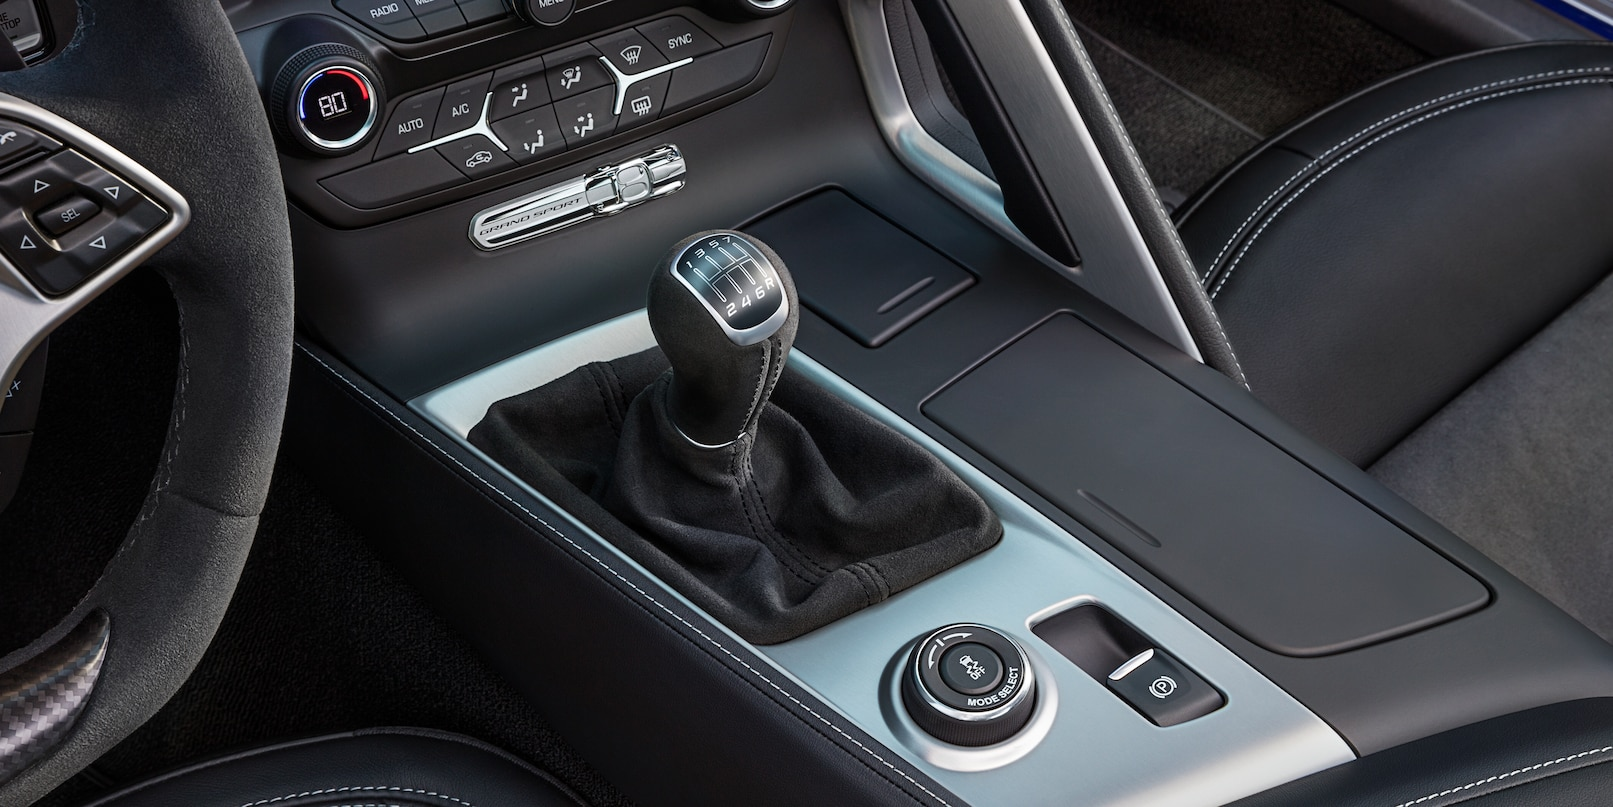 7-Speed Manual Transmission in the 2018 Corvette